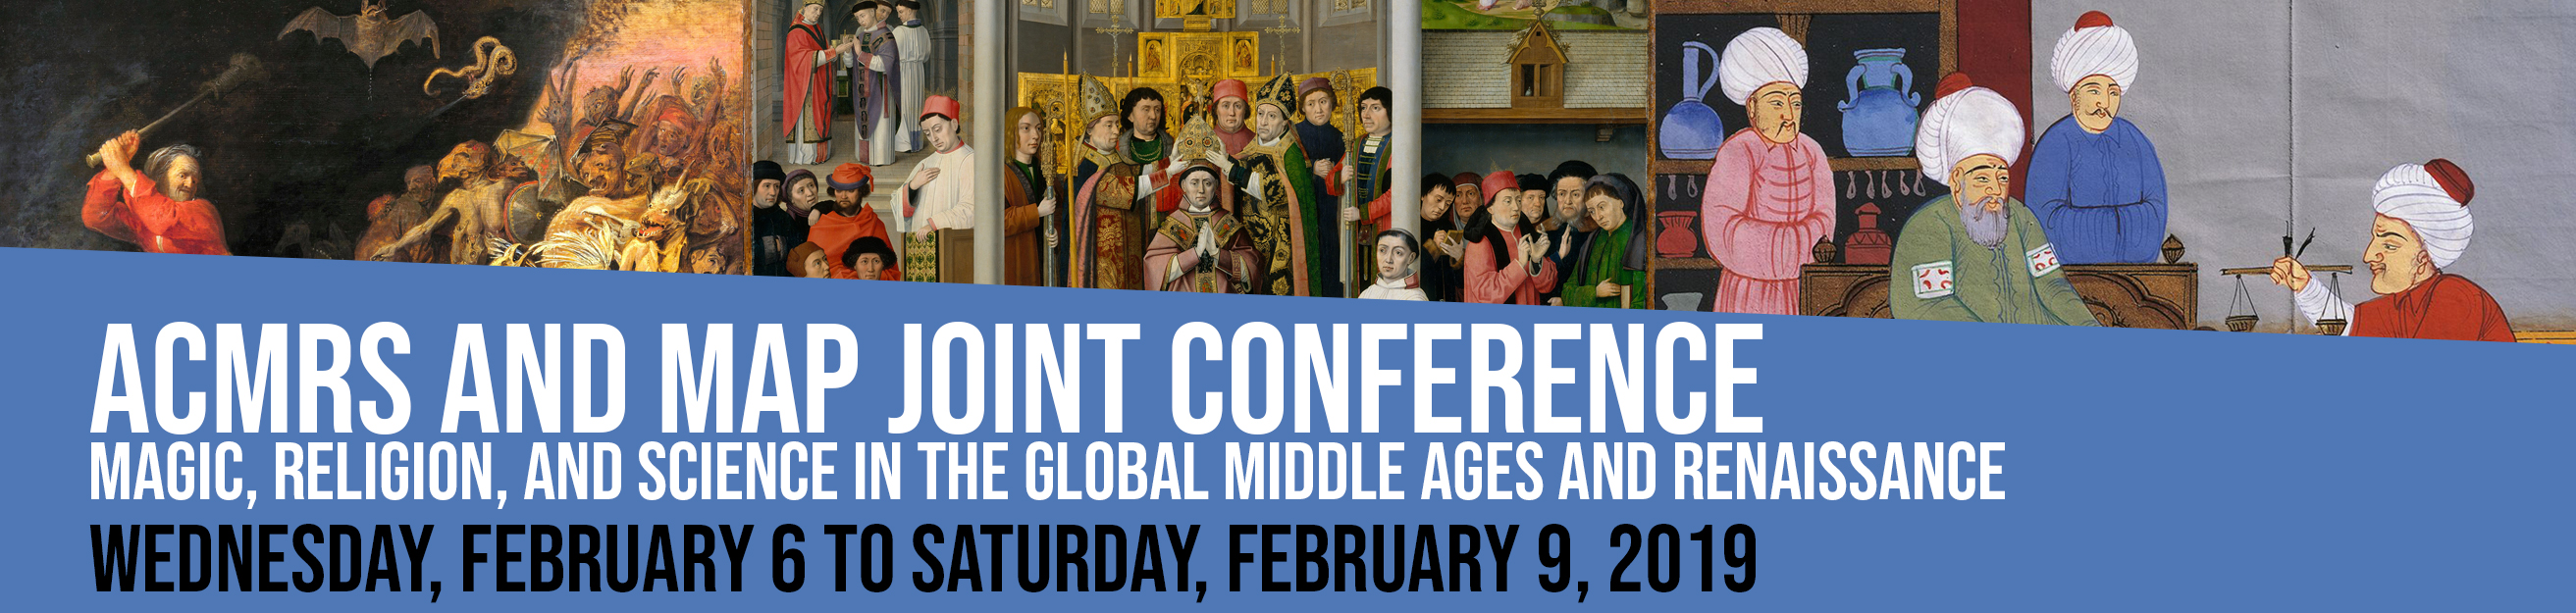 Arizona Center for Medieval and Renaissance Studies (ACMRS) and Medieval Association of the Pacific (MAP) Joint Conference: Magic, Religion, and Science in the Global Middle Ages and Renaissance